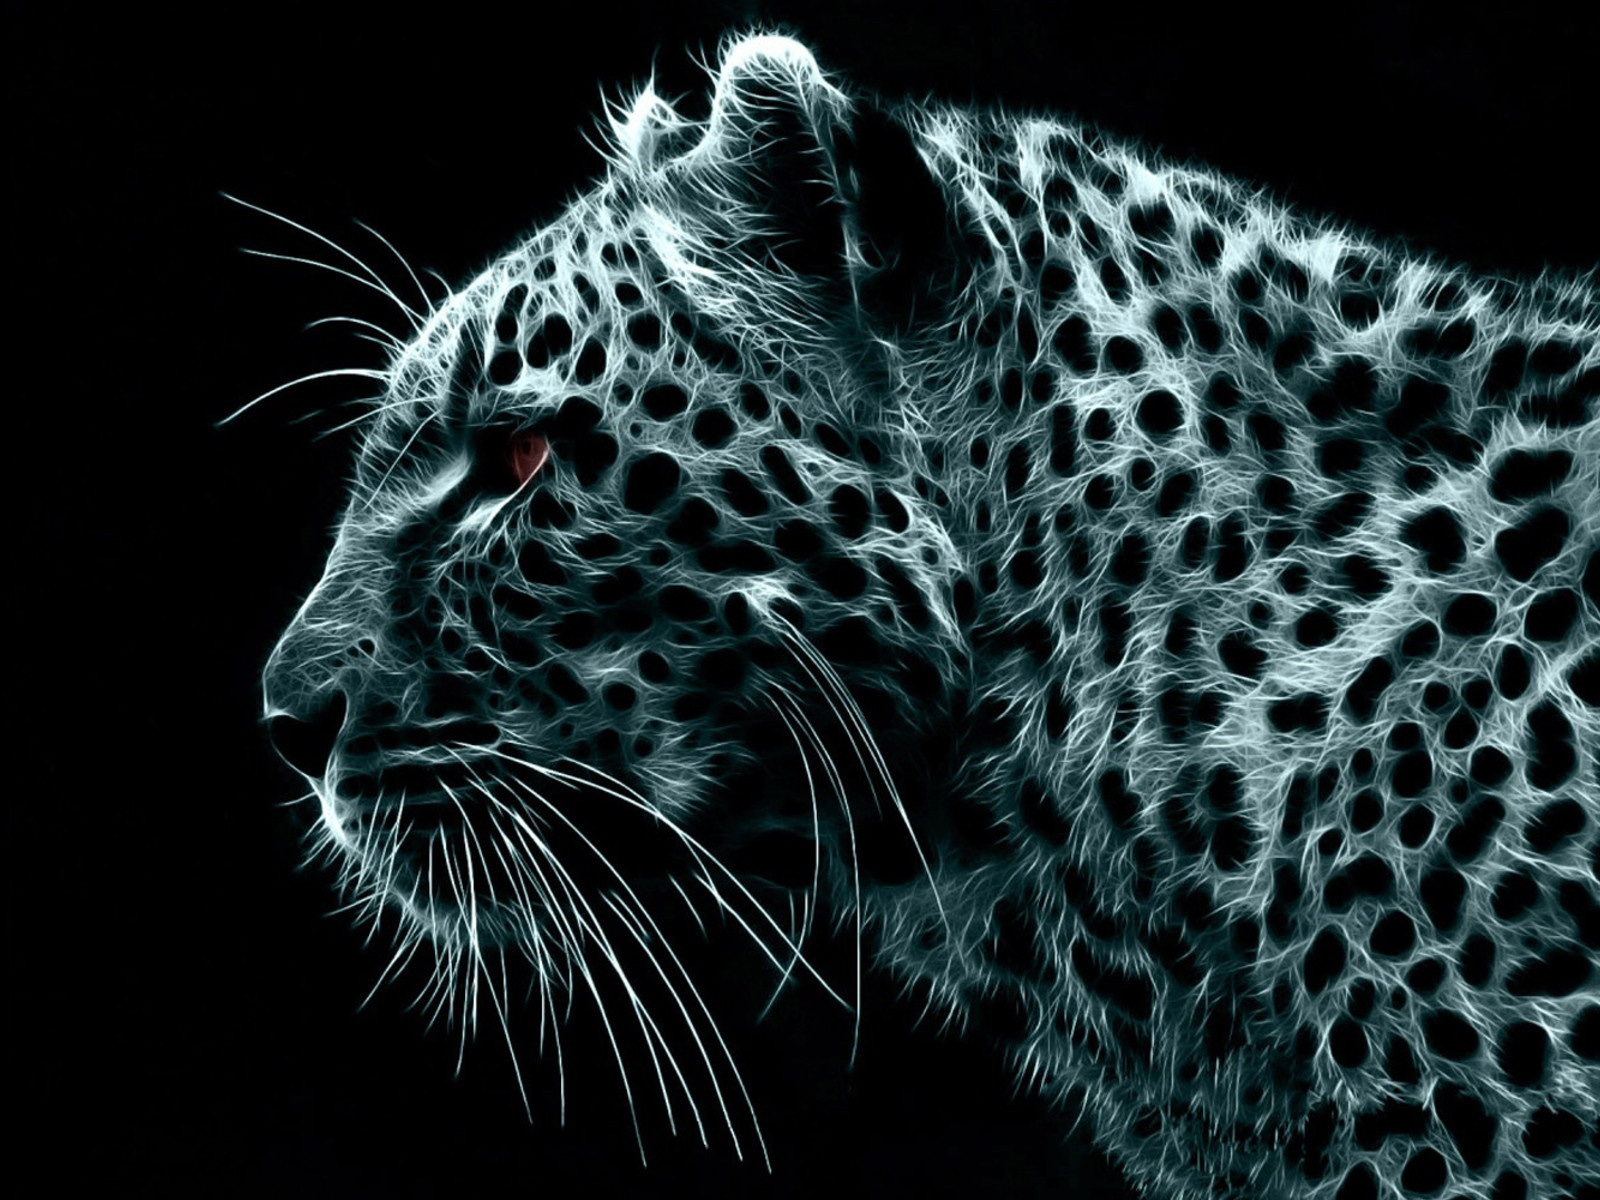 HD Wallpaper of Crazy Leopard Wallpapers Hd, Desktop Wallpaper Crazy Leopard Wallpapers Hd